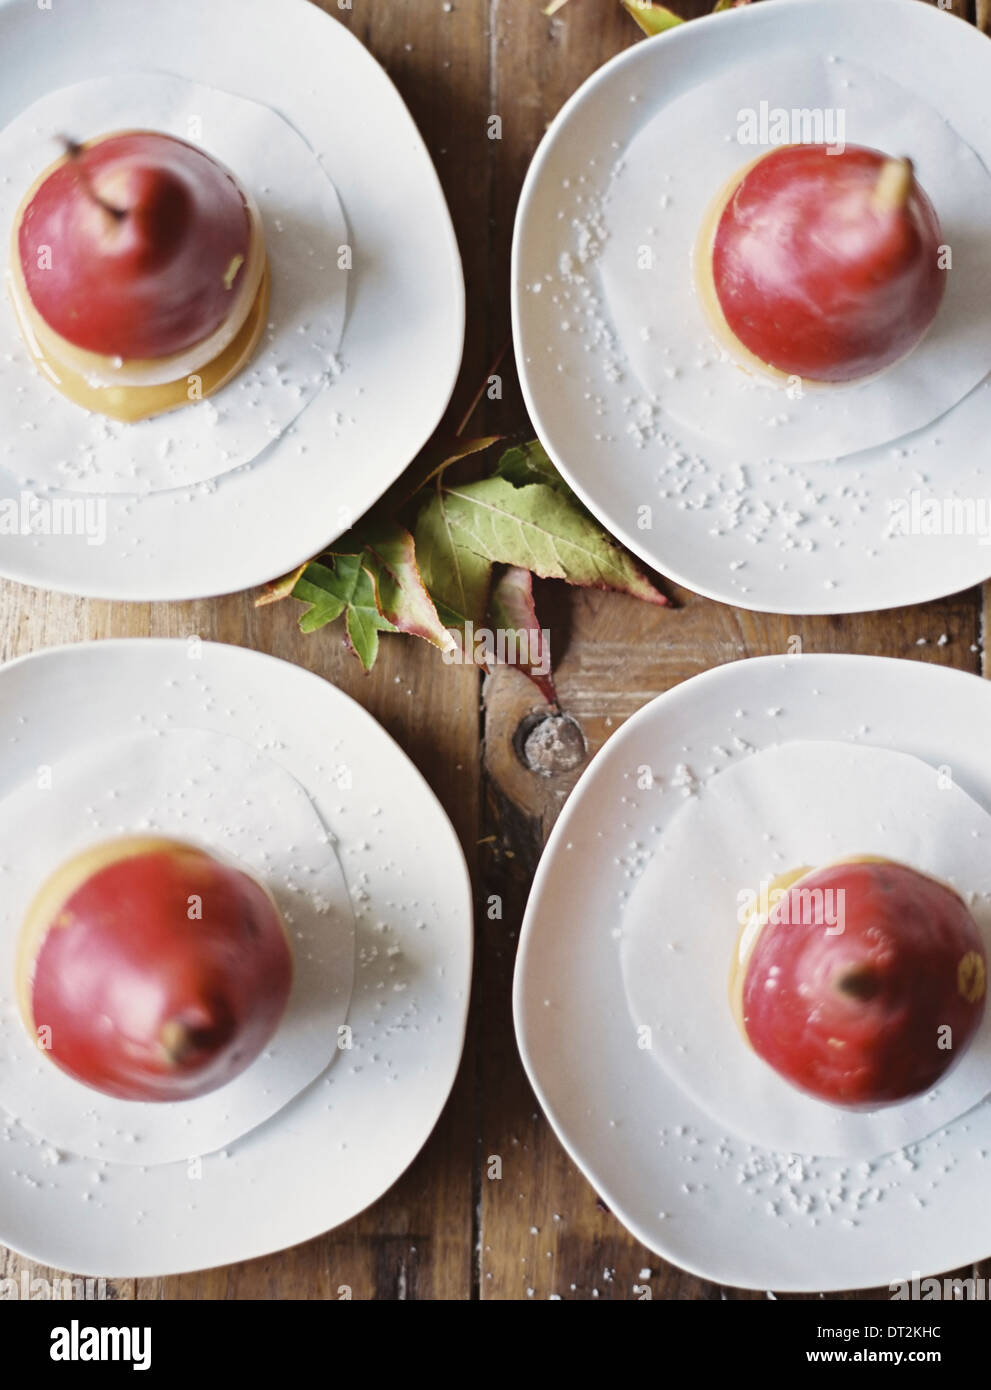 Tabletop viewed from above Four plates with dessert Pears dipped in sauce - Stock Image